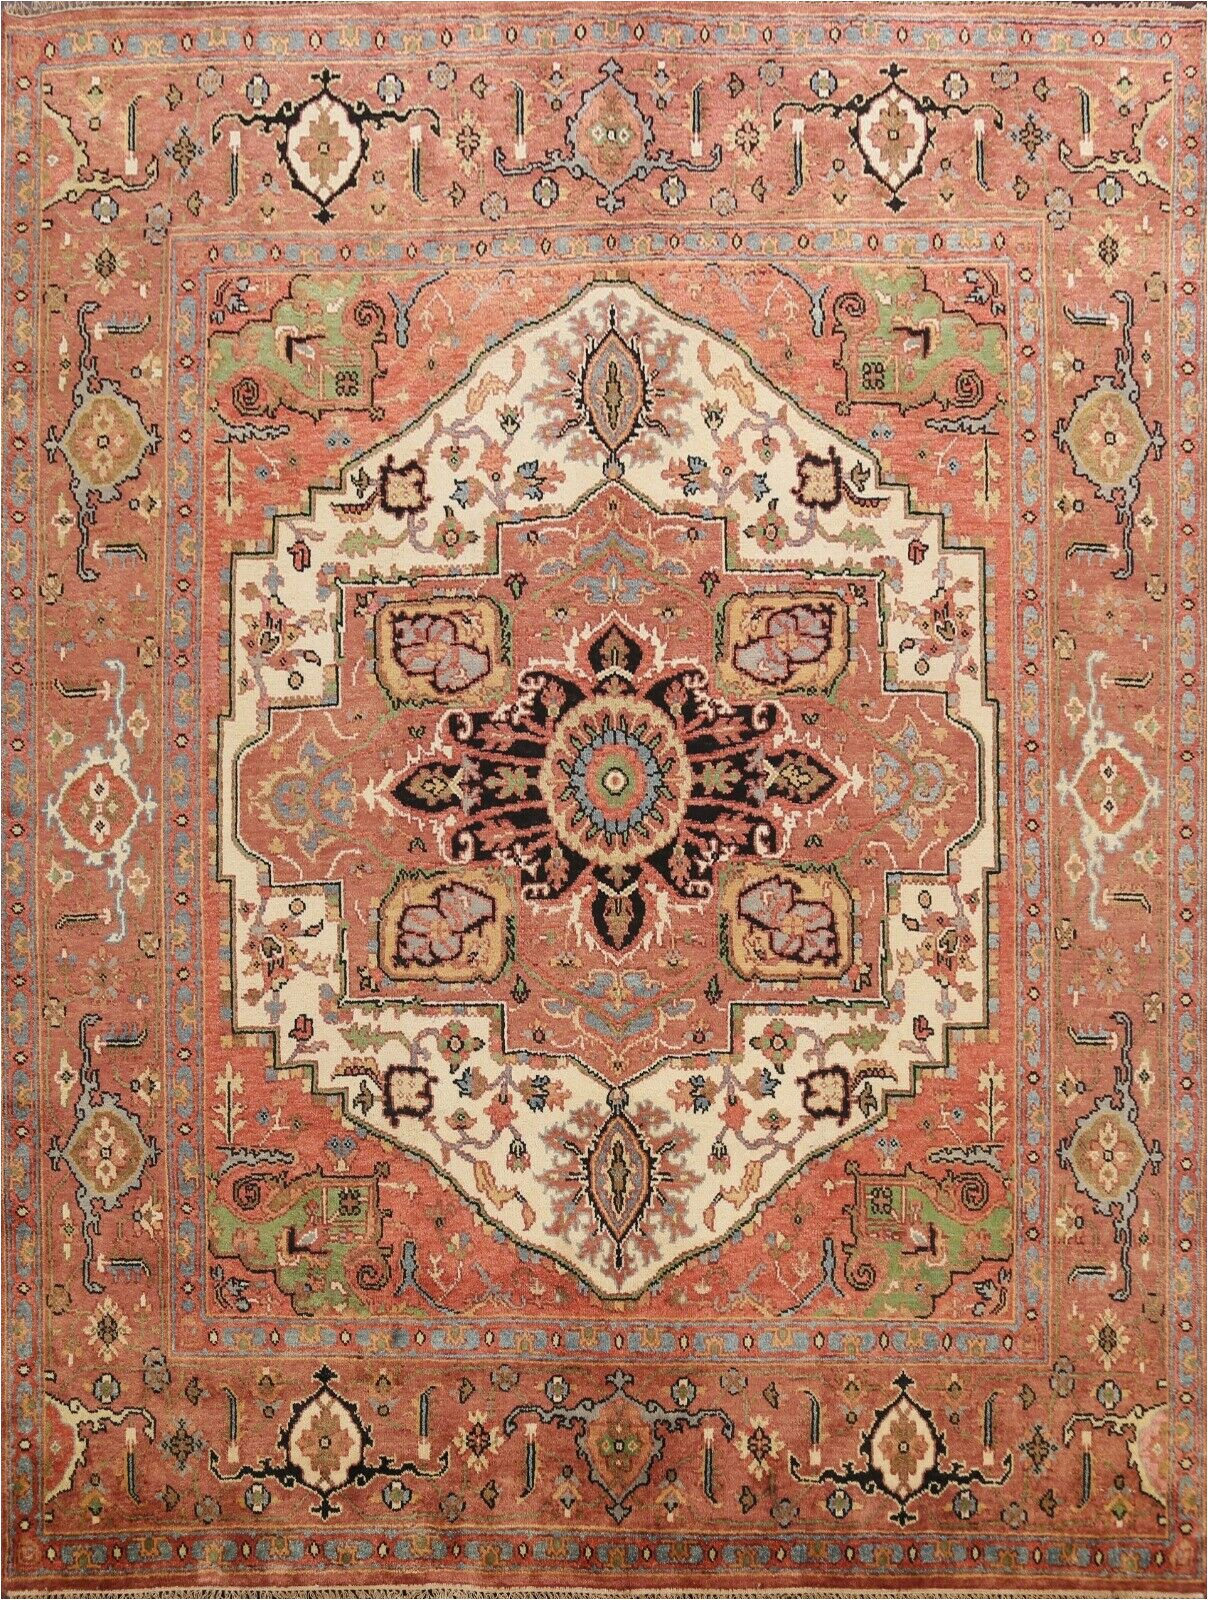 6 Foot Square area Rug 10×10 Ft Square Geometric Ivory Heriz Serapi oriental area Rug Wool Hand Knotted